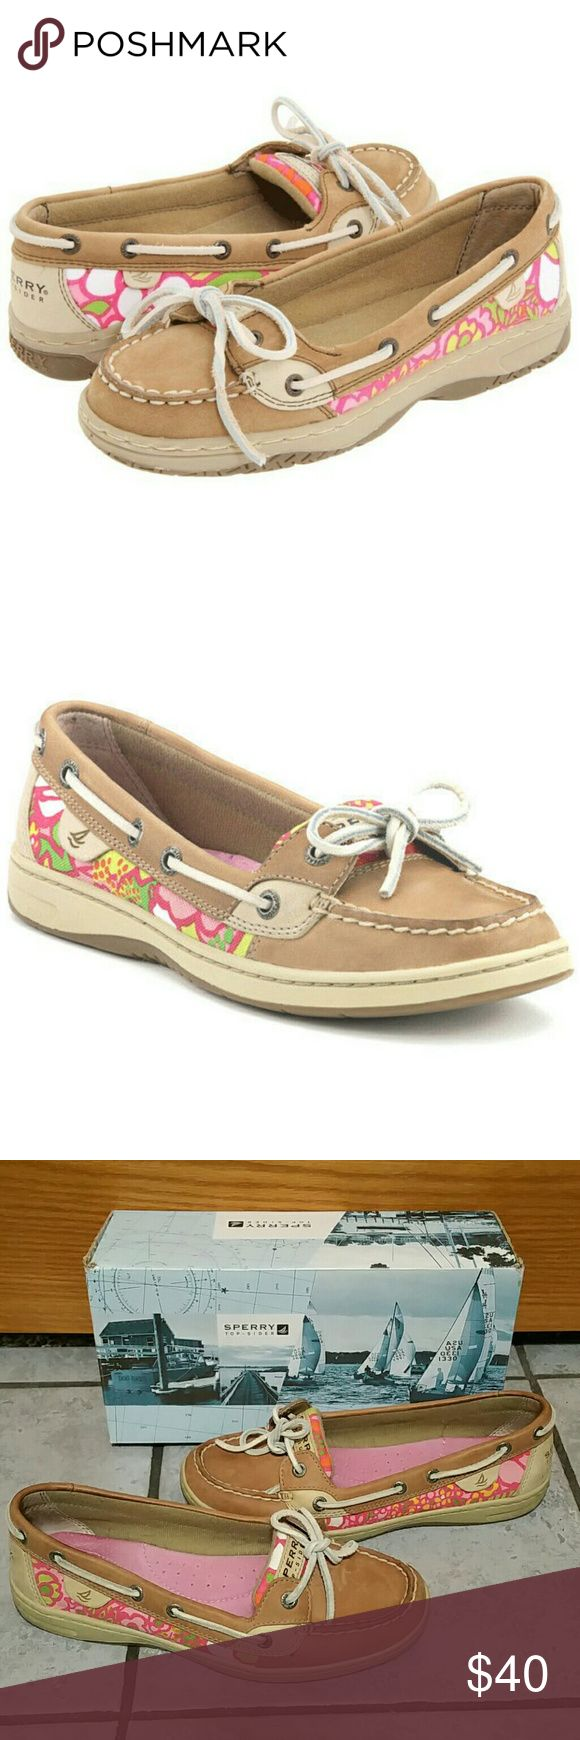 Sperry Top-Sider Angelfish Linen Floral Shoes Sperry Top-Sider Women's Angelfish Linen Floral Boat Shoes -Ships in Original Box- Classic styling with an updated silhouette, shapes this cute slip on boat shoe. -Leather upper with Floral Fabric Accents -Textile lining and removable footbed for all-day comfort -Slip-on styling with Authentic Rawhide -Linen Leather -Cushioned Sole Size: 8 (true to size) Great Condition, worn once:  pics show--> -a few scuffs on toe and heel, not very noticeable…